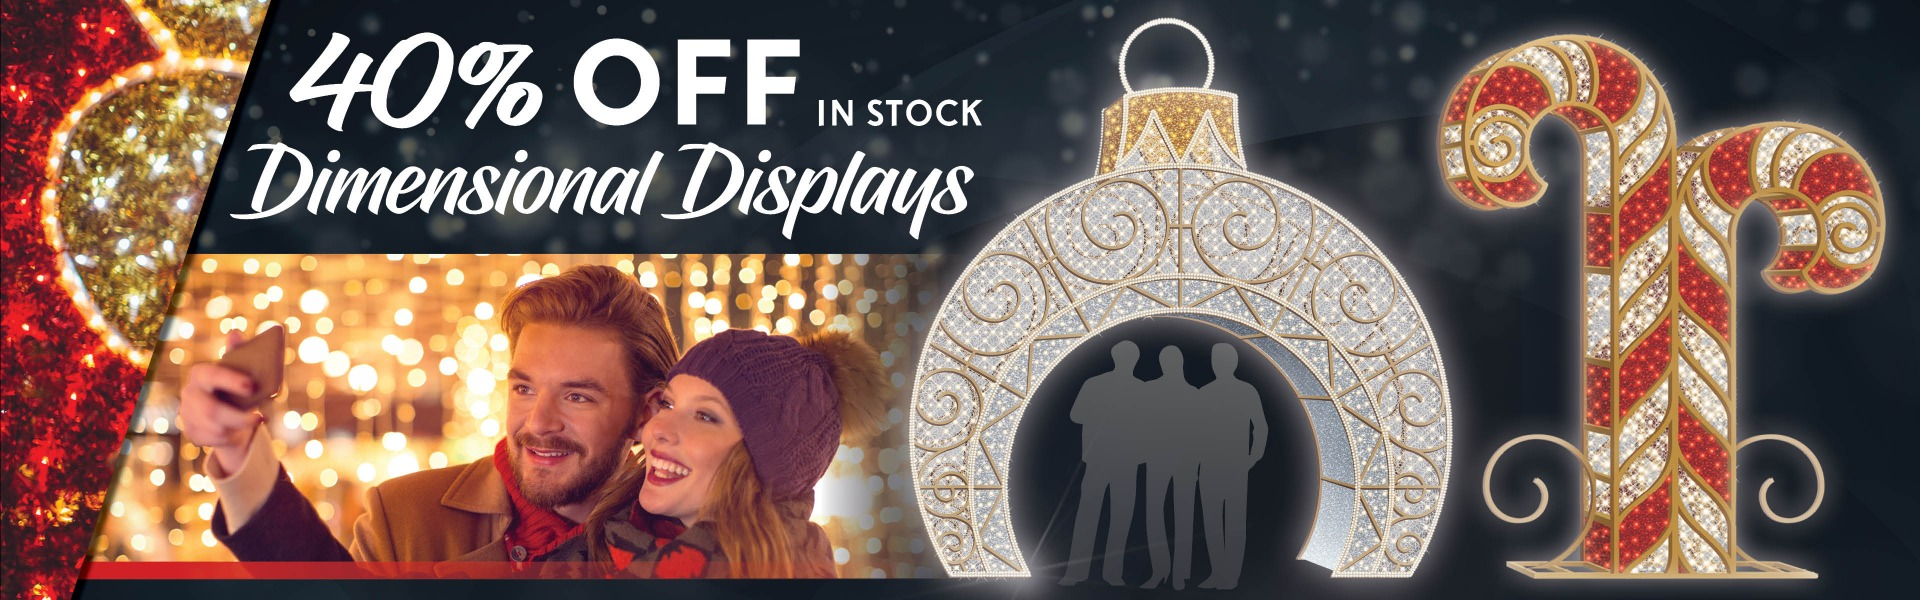 40% Off Dimensional Displays!